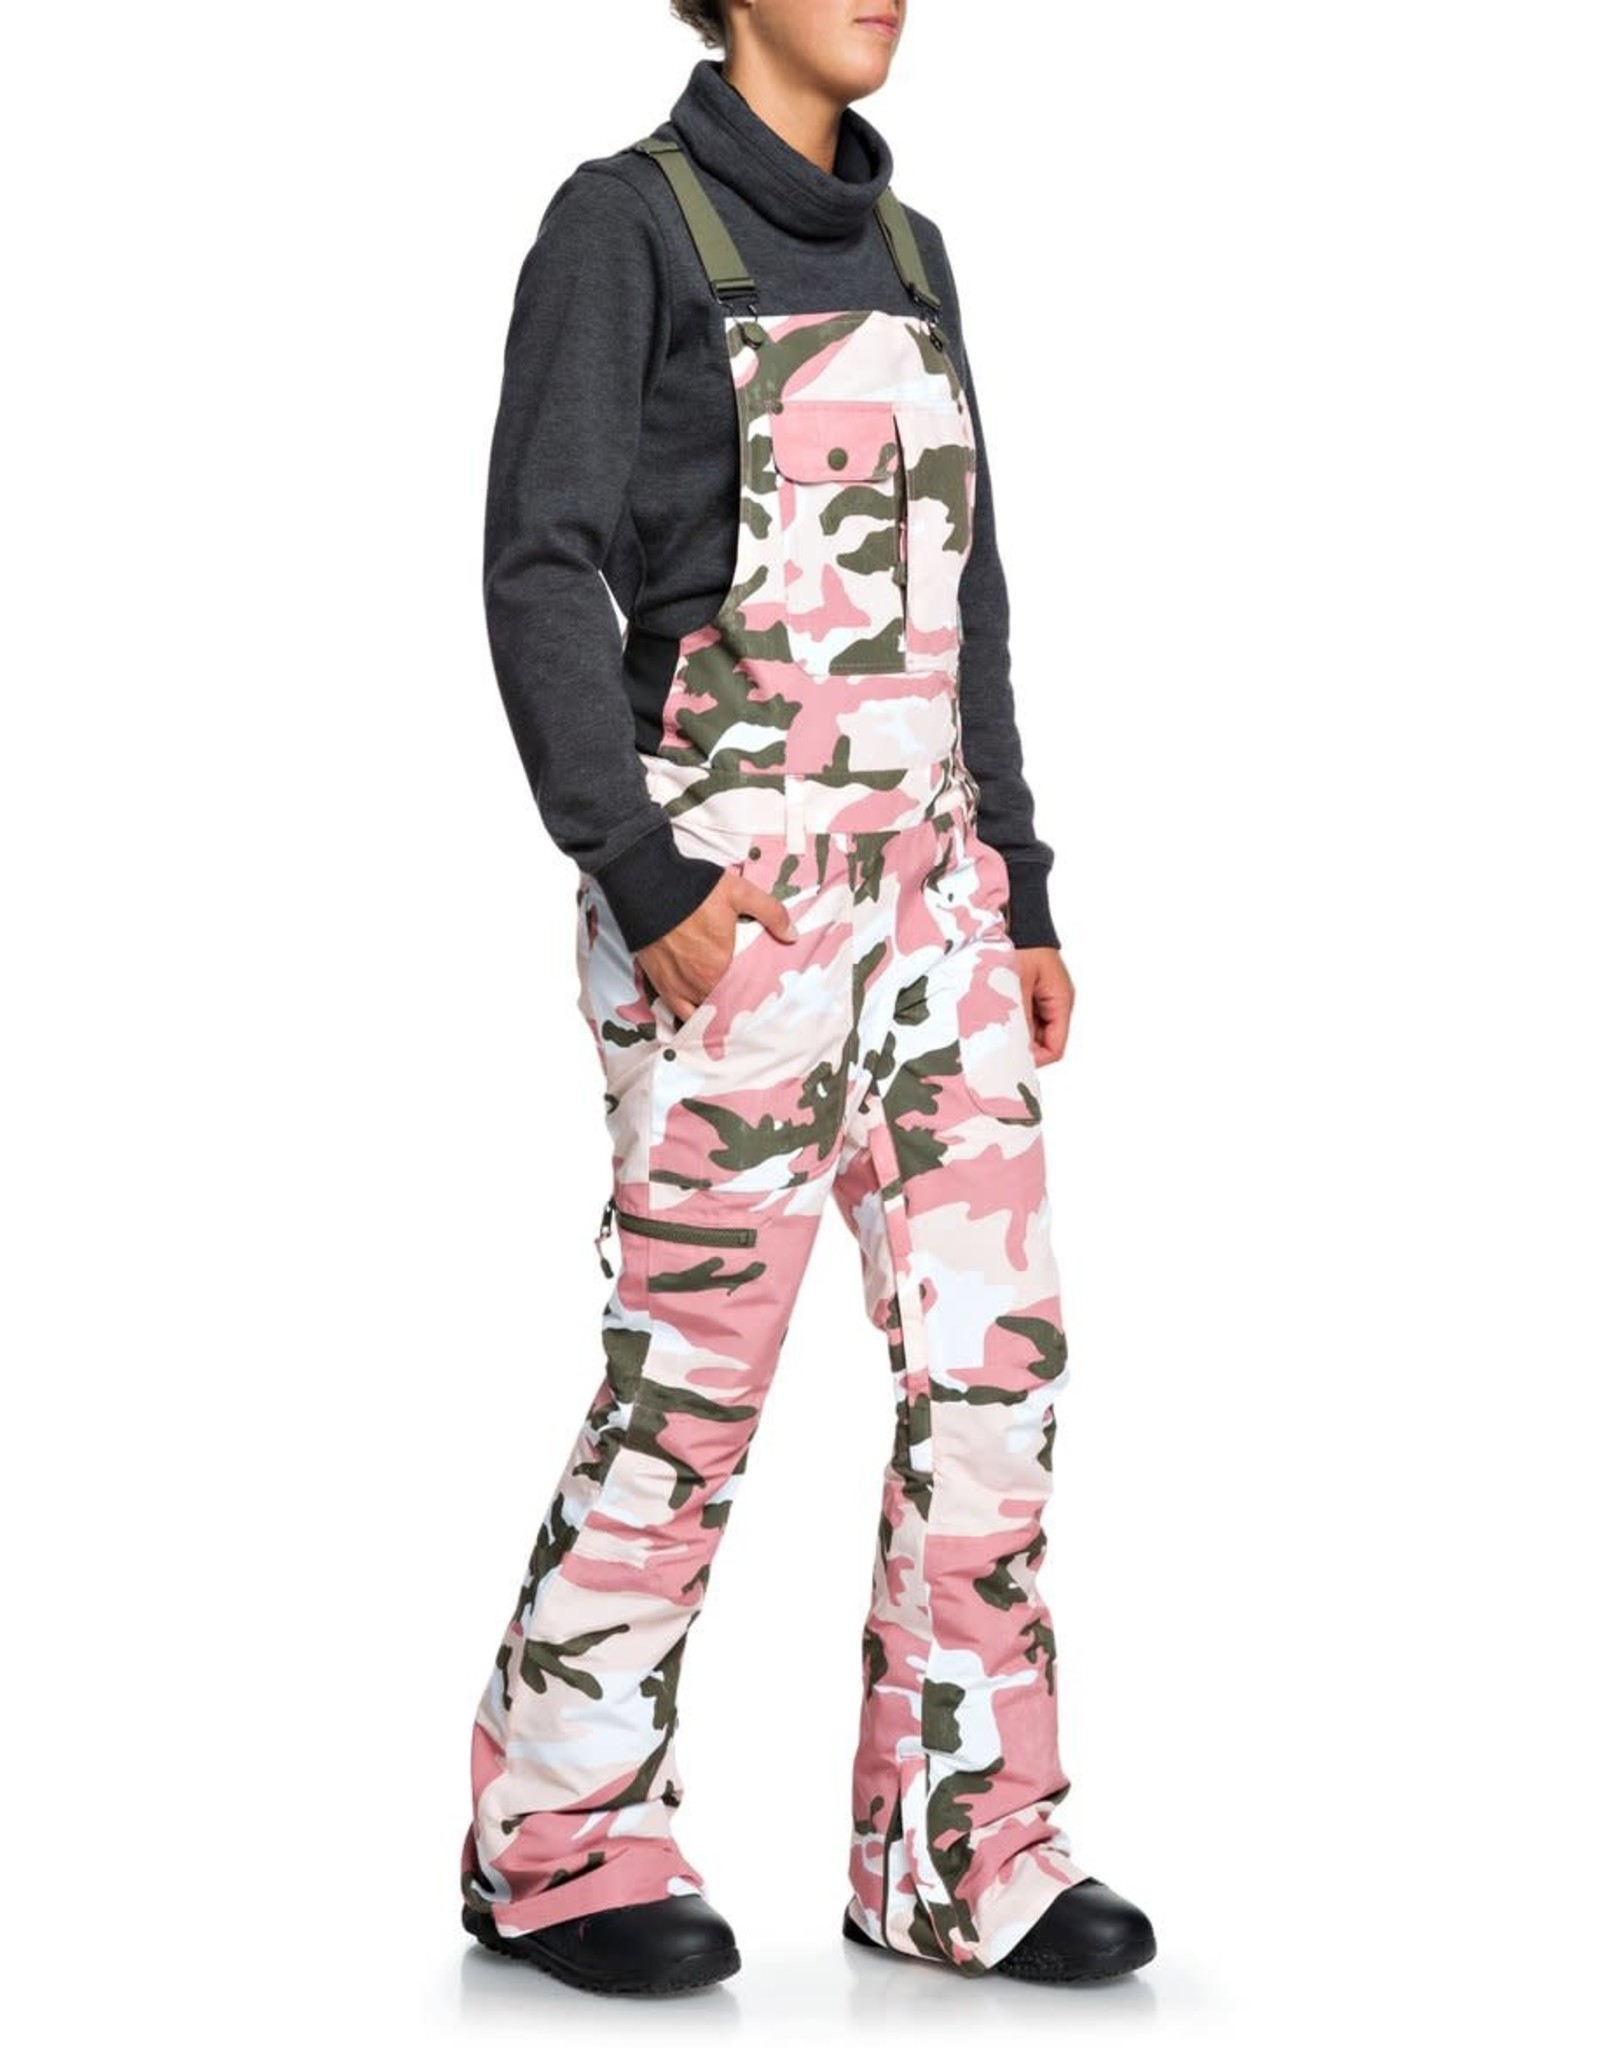 DC DC - Wmns COLLECTIVE BIB PANTS - Rose Camo -